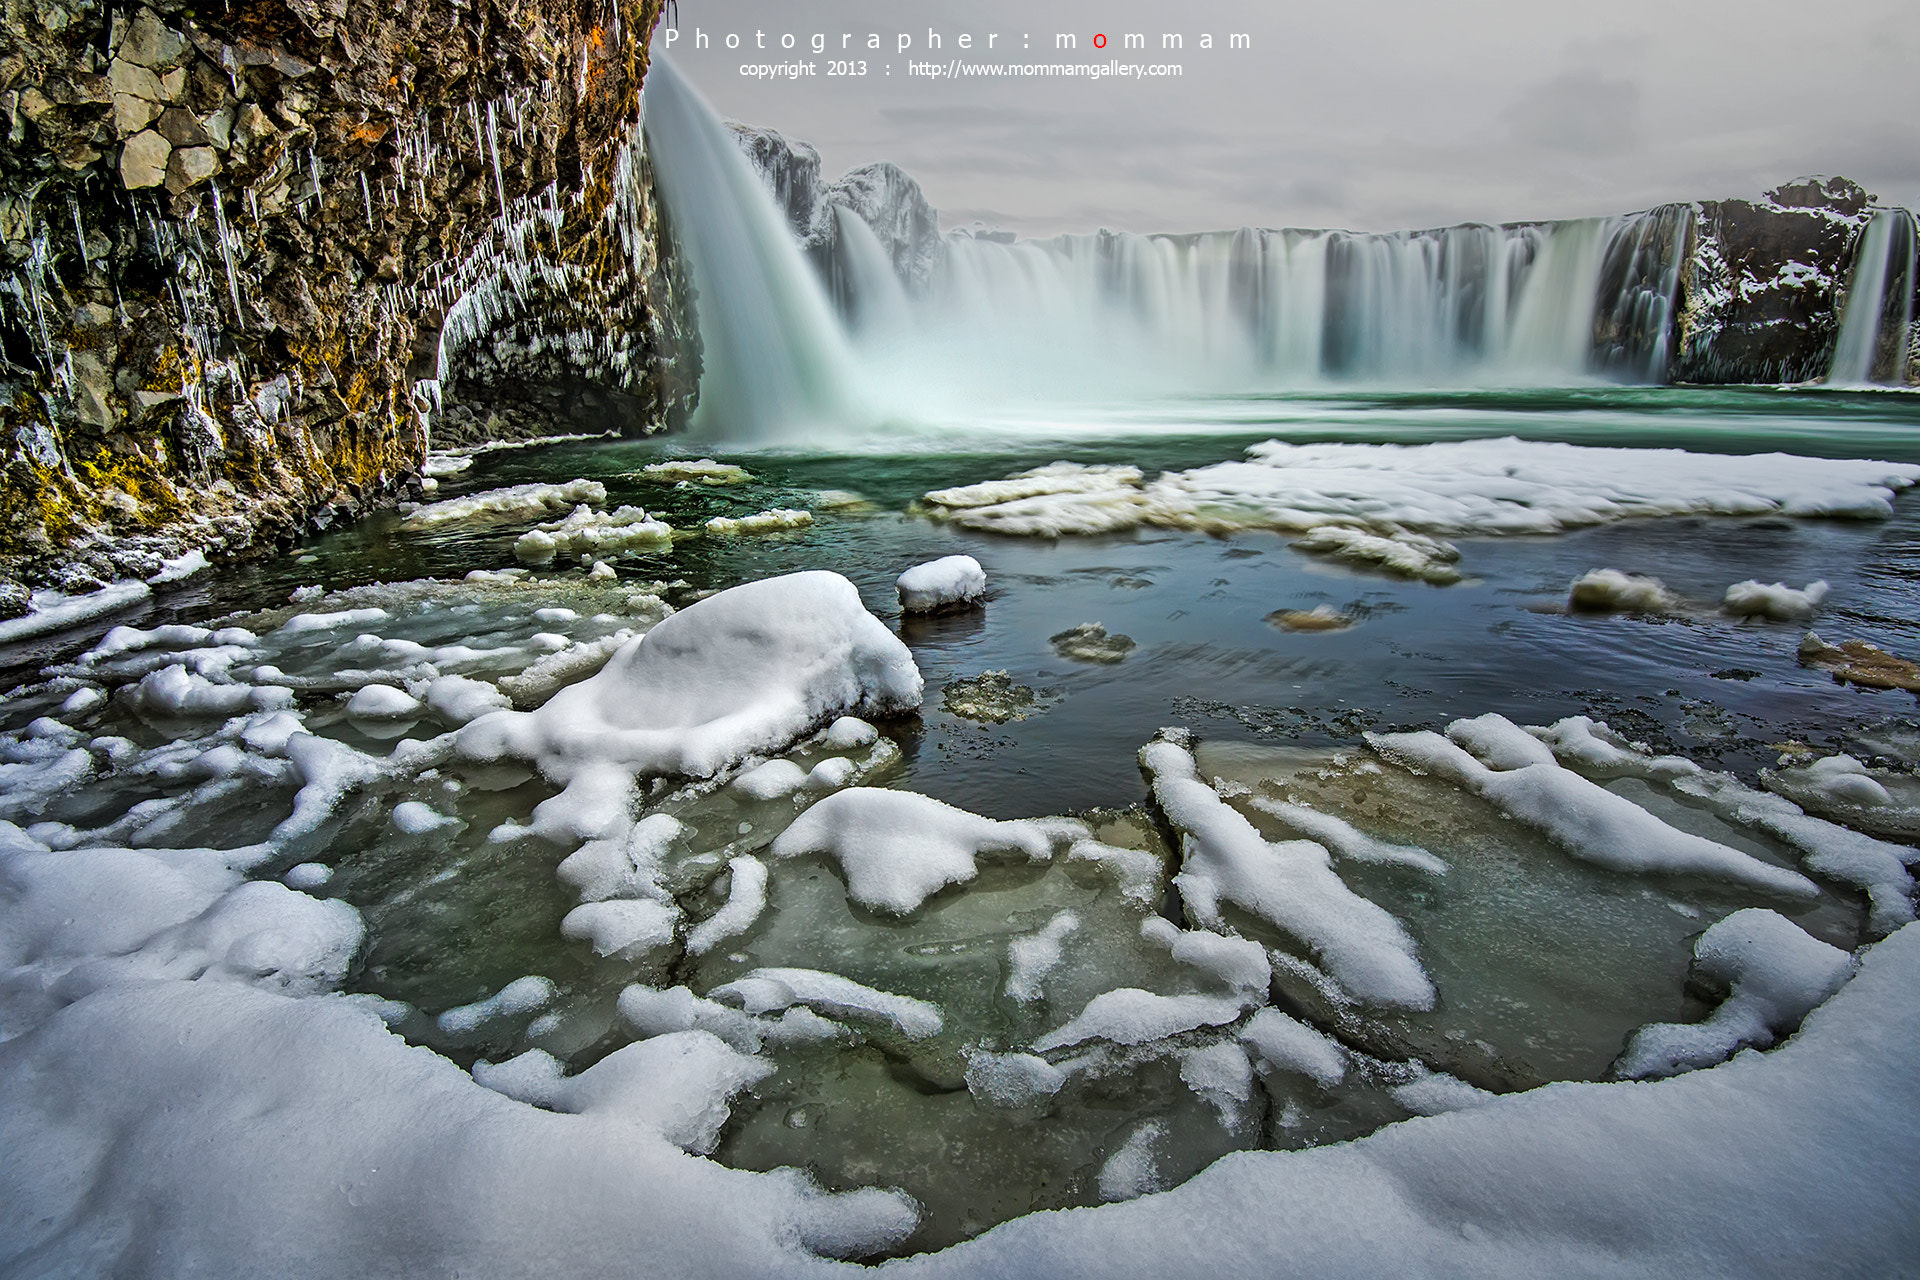 Photograph godafoss... by mommam 777 on 500px